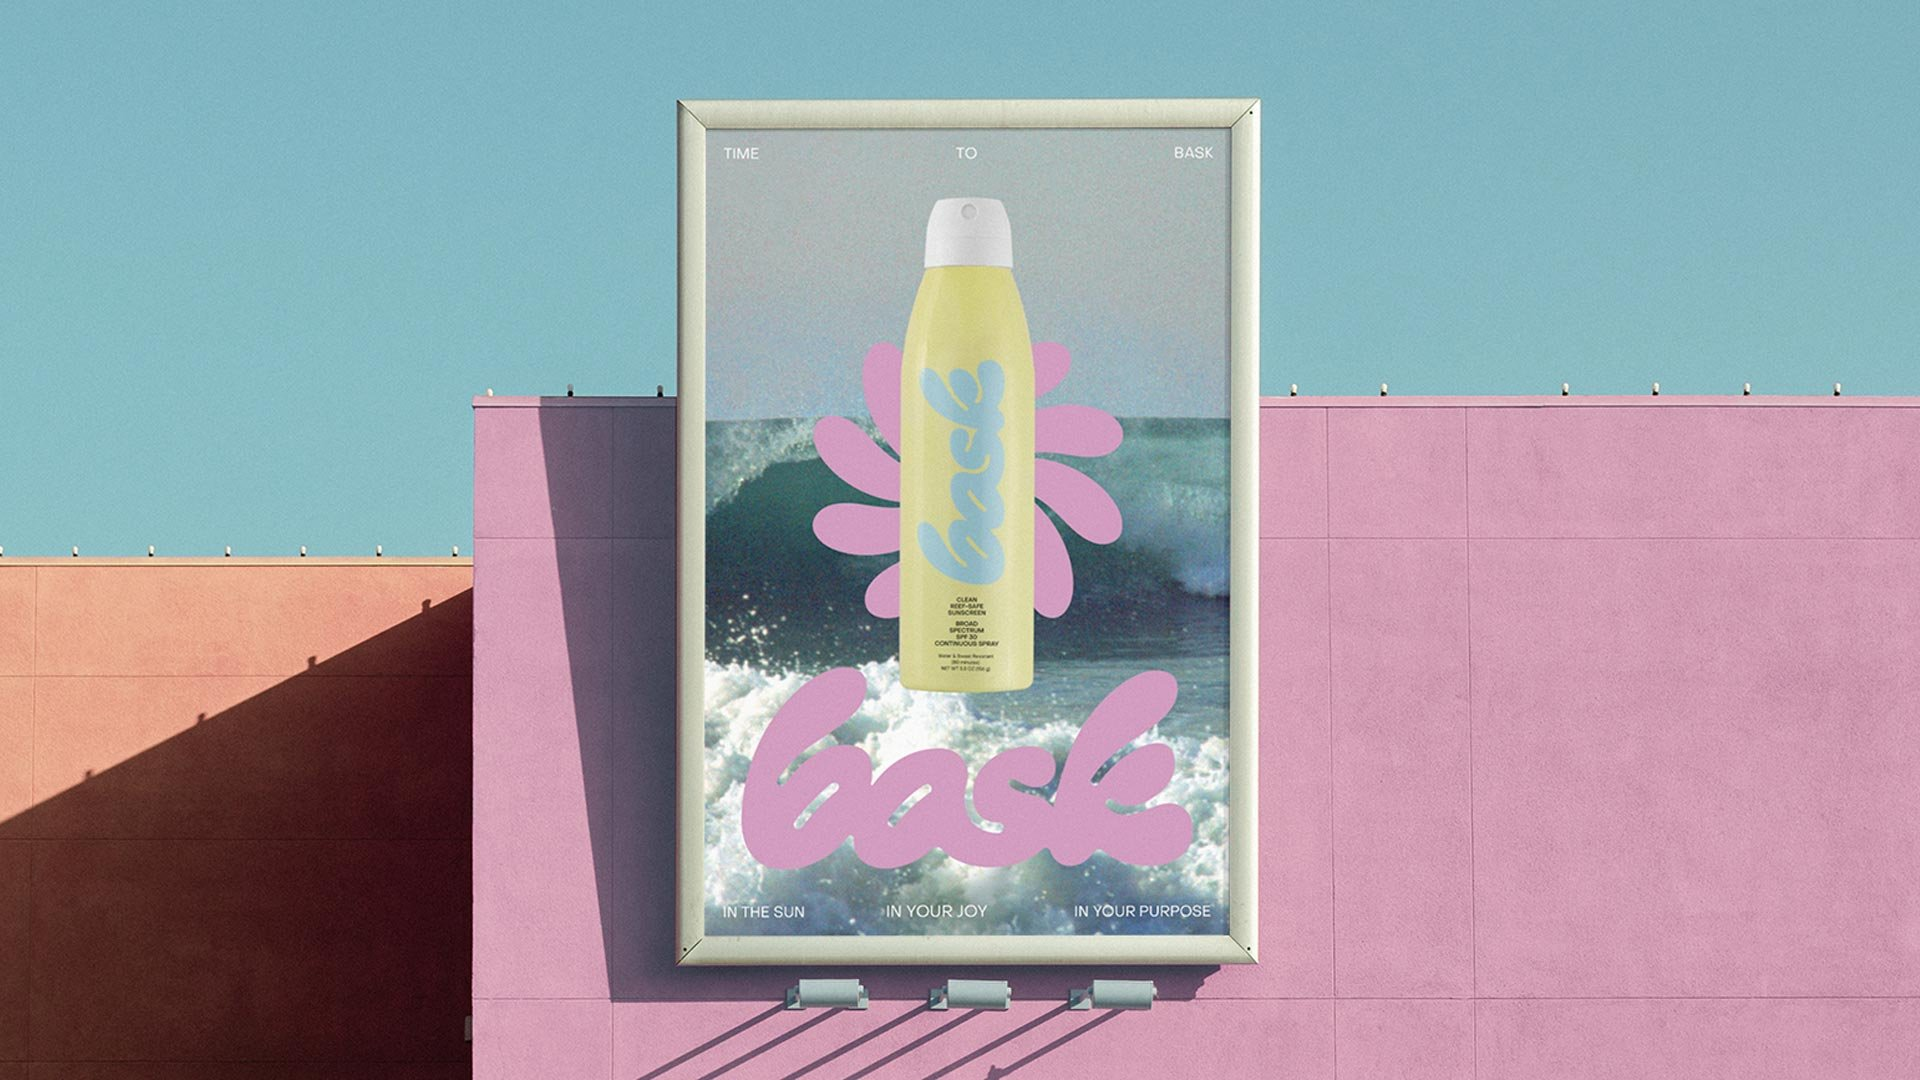 Bask Yellow Continuous Spray Bottle Poster on a Billboard by RoAndCo